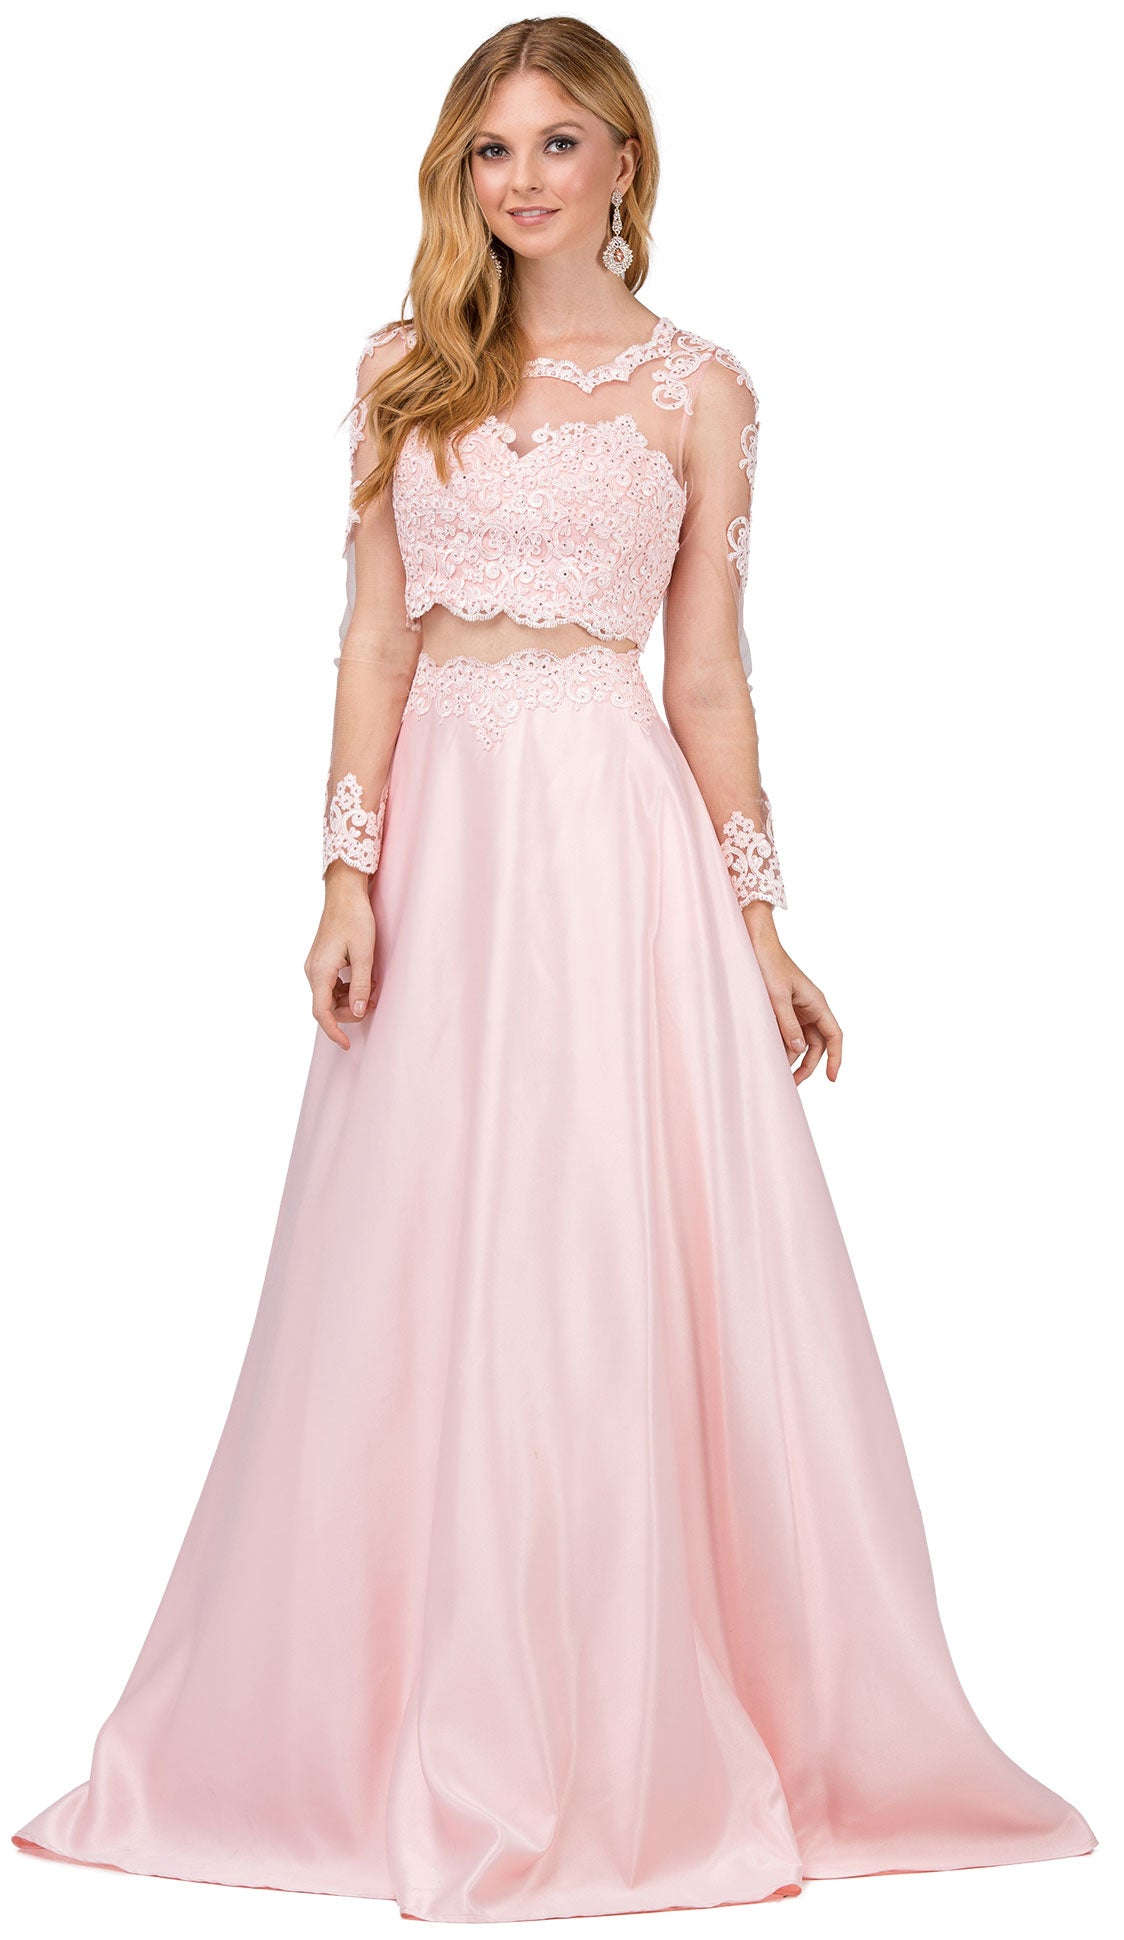 Image of Long Sleeve Lace Top Satin Skirt Two Piece Prom Dress in Blush